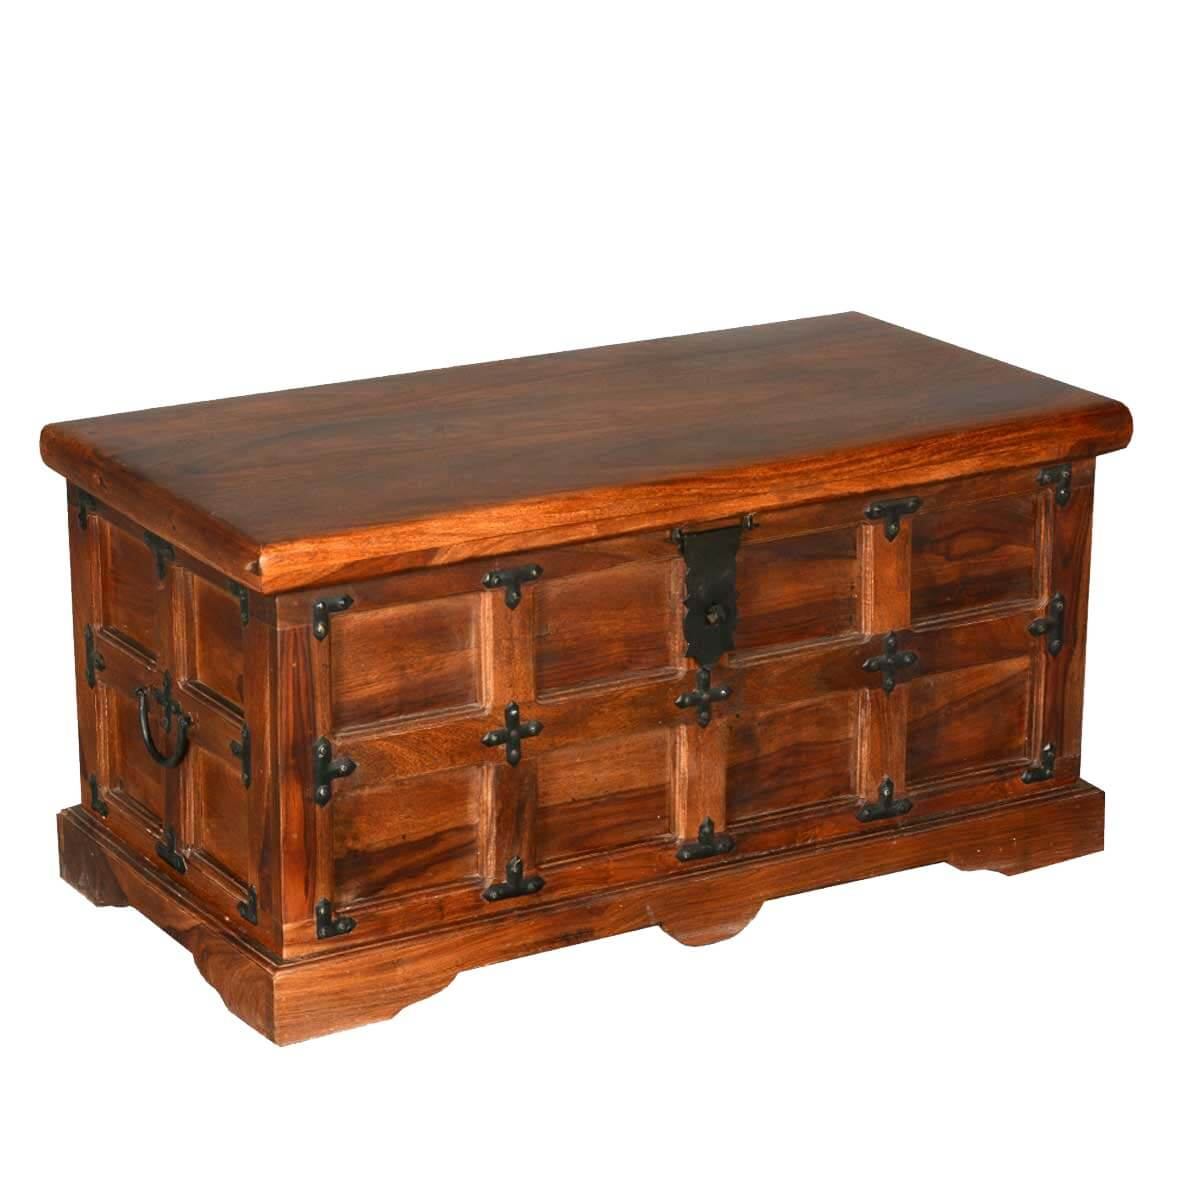 Beaufort solid rosewood with metal accents coffee table storage chest Coffee table chest with storage